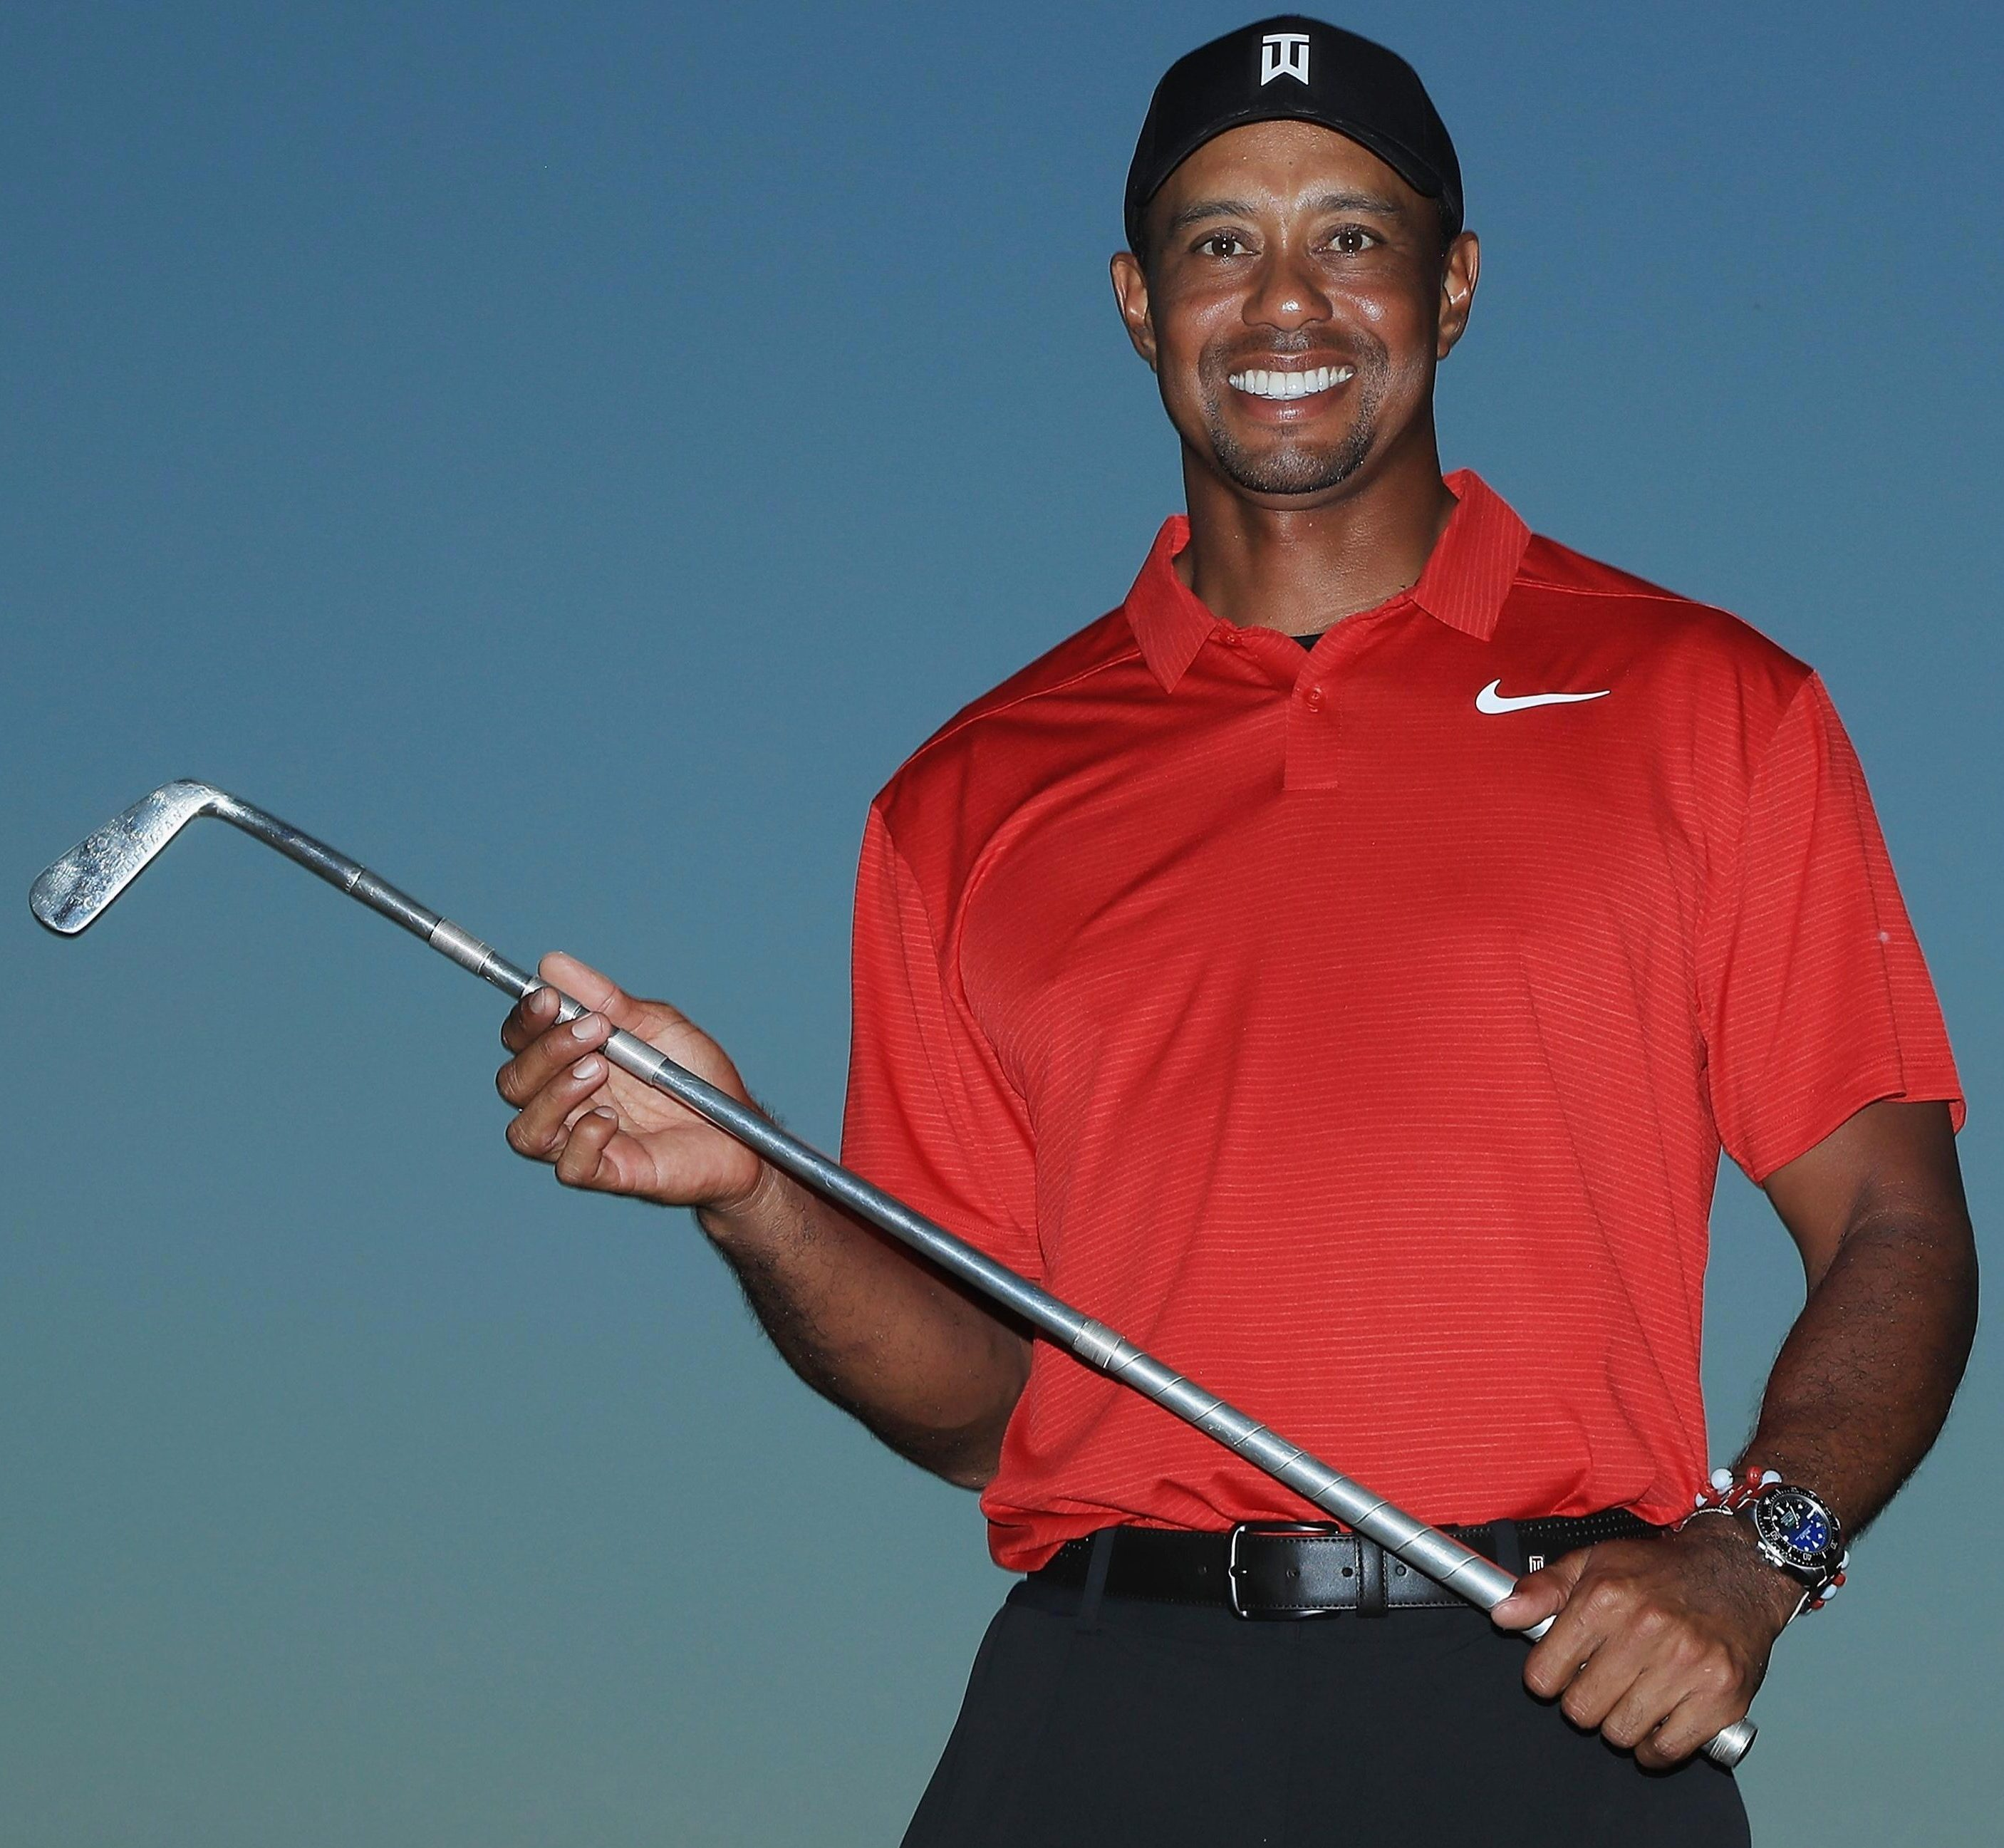 Tiger Woods victory at the Tour Championship in Atlanta was one of sports greatest comebacks